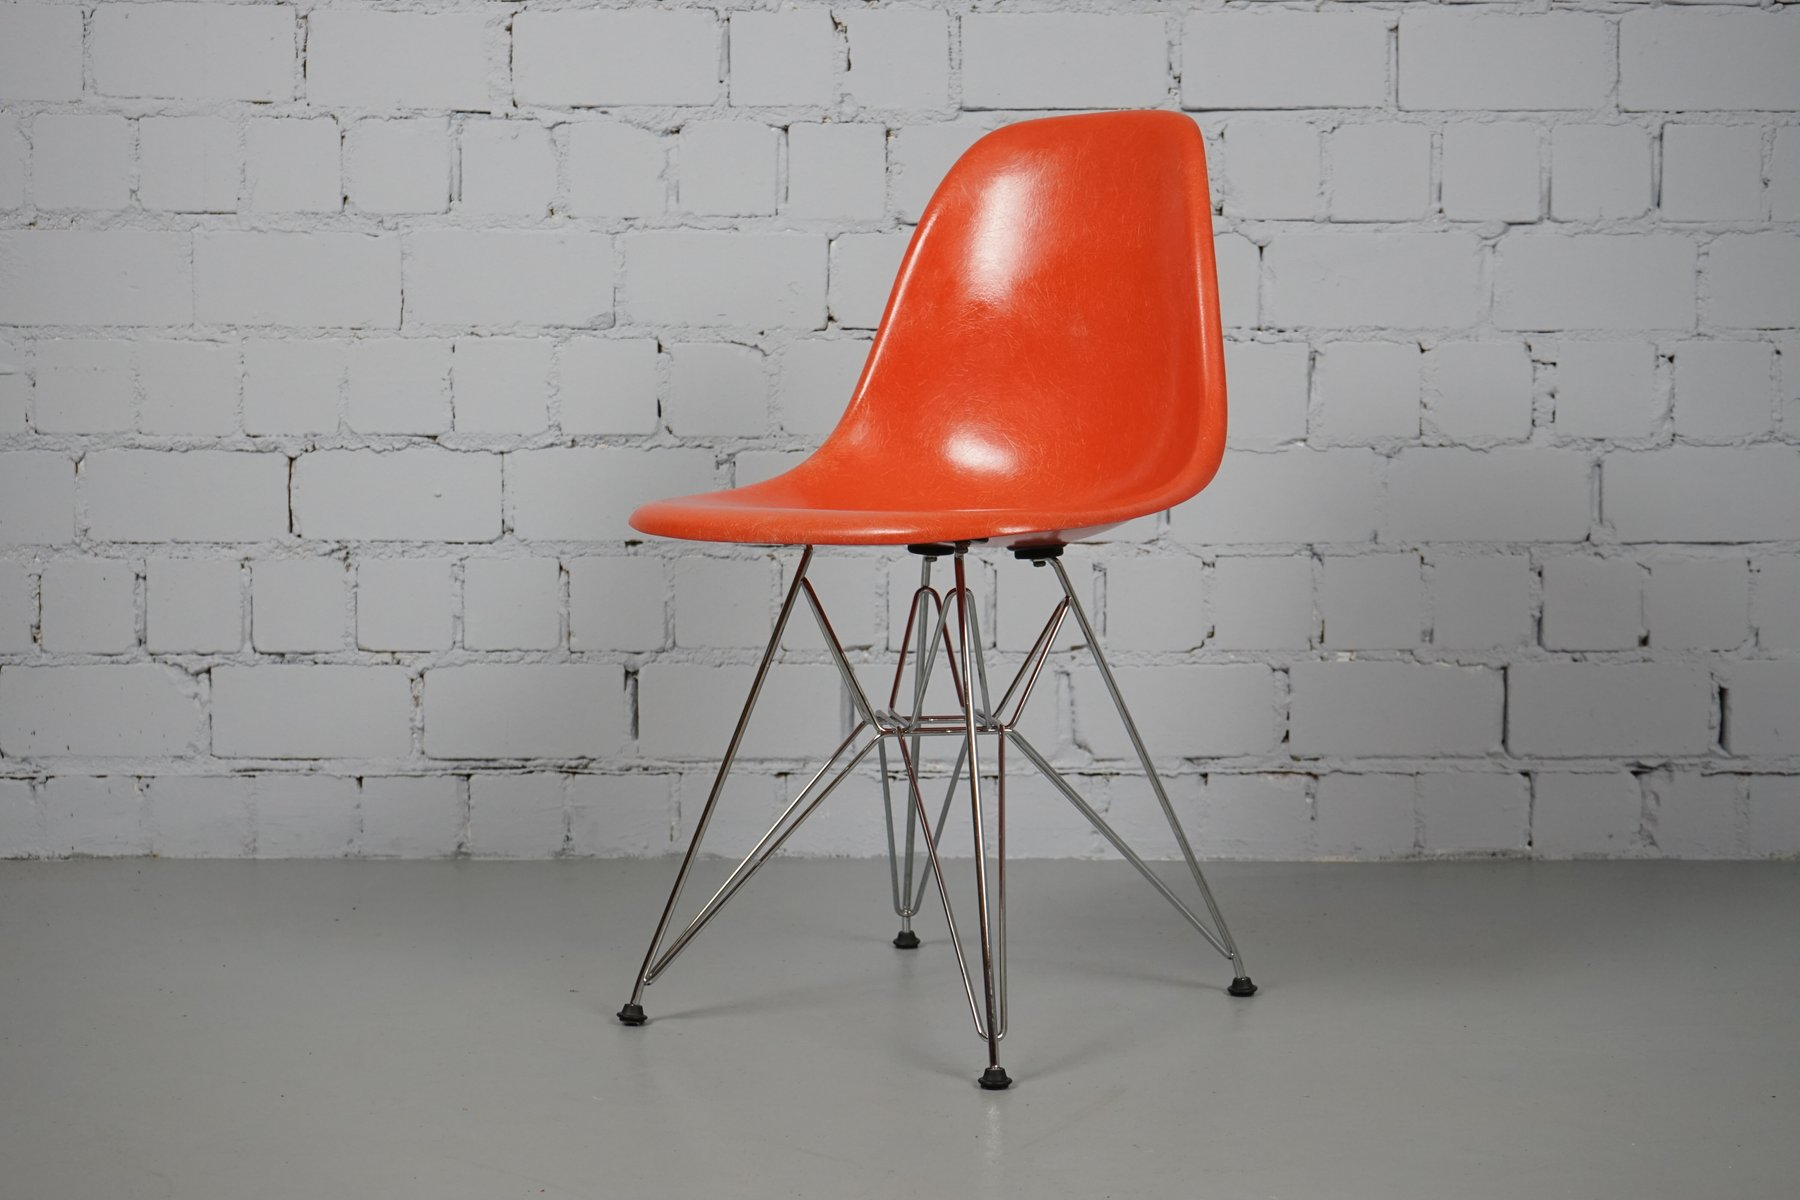 Vintage dsr chair by charles ray eames for vitra for for Eames chair deutschland